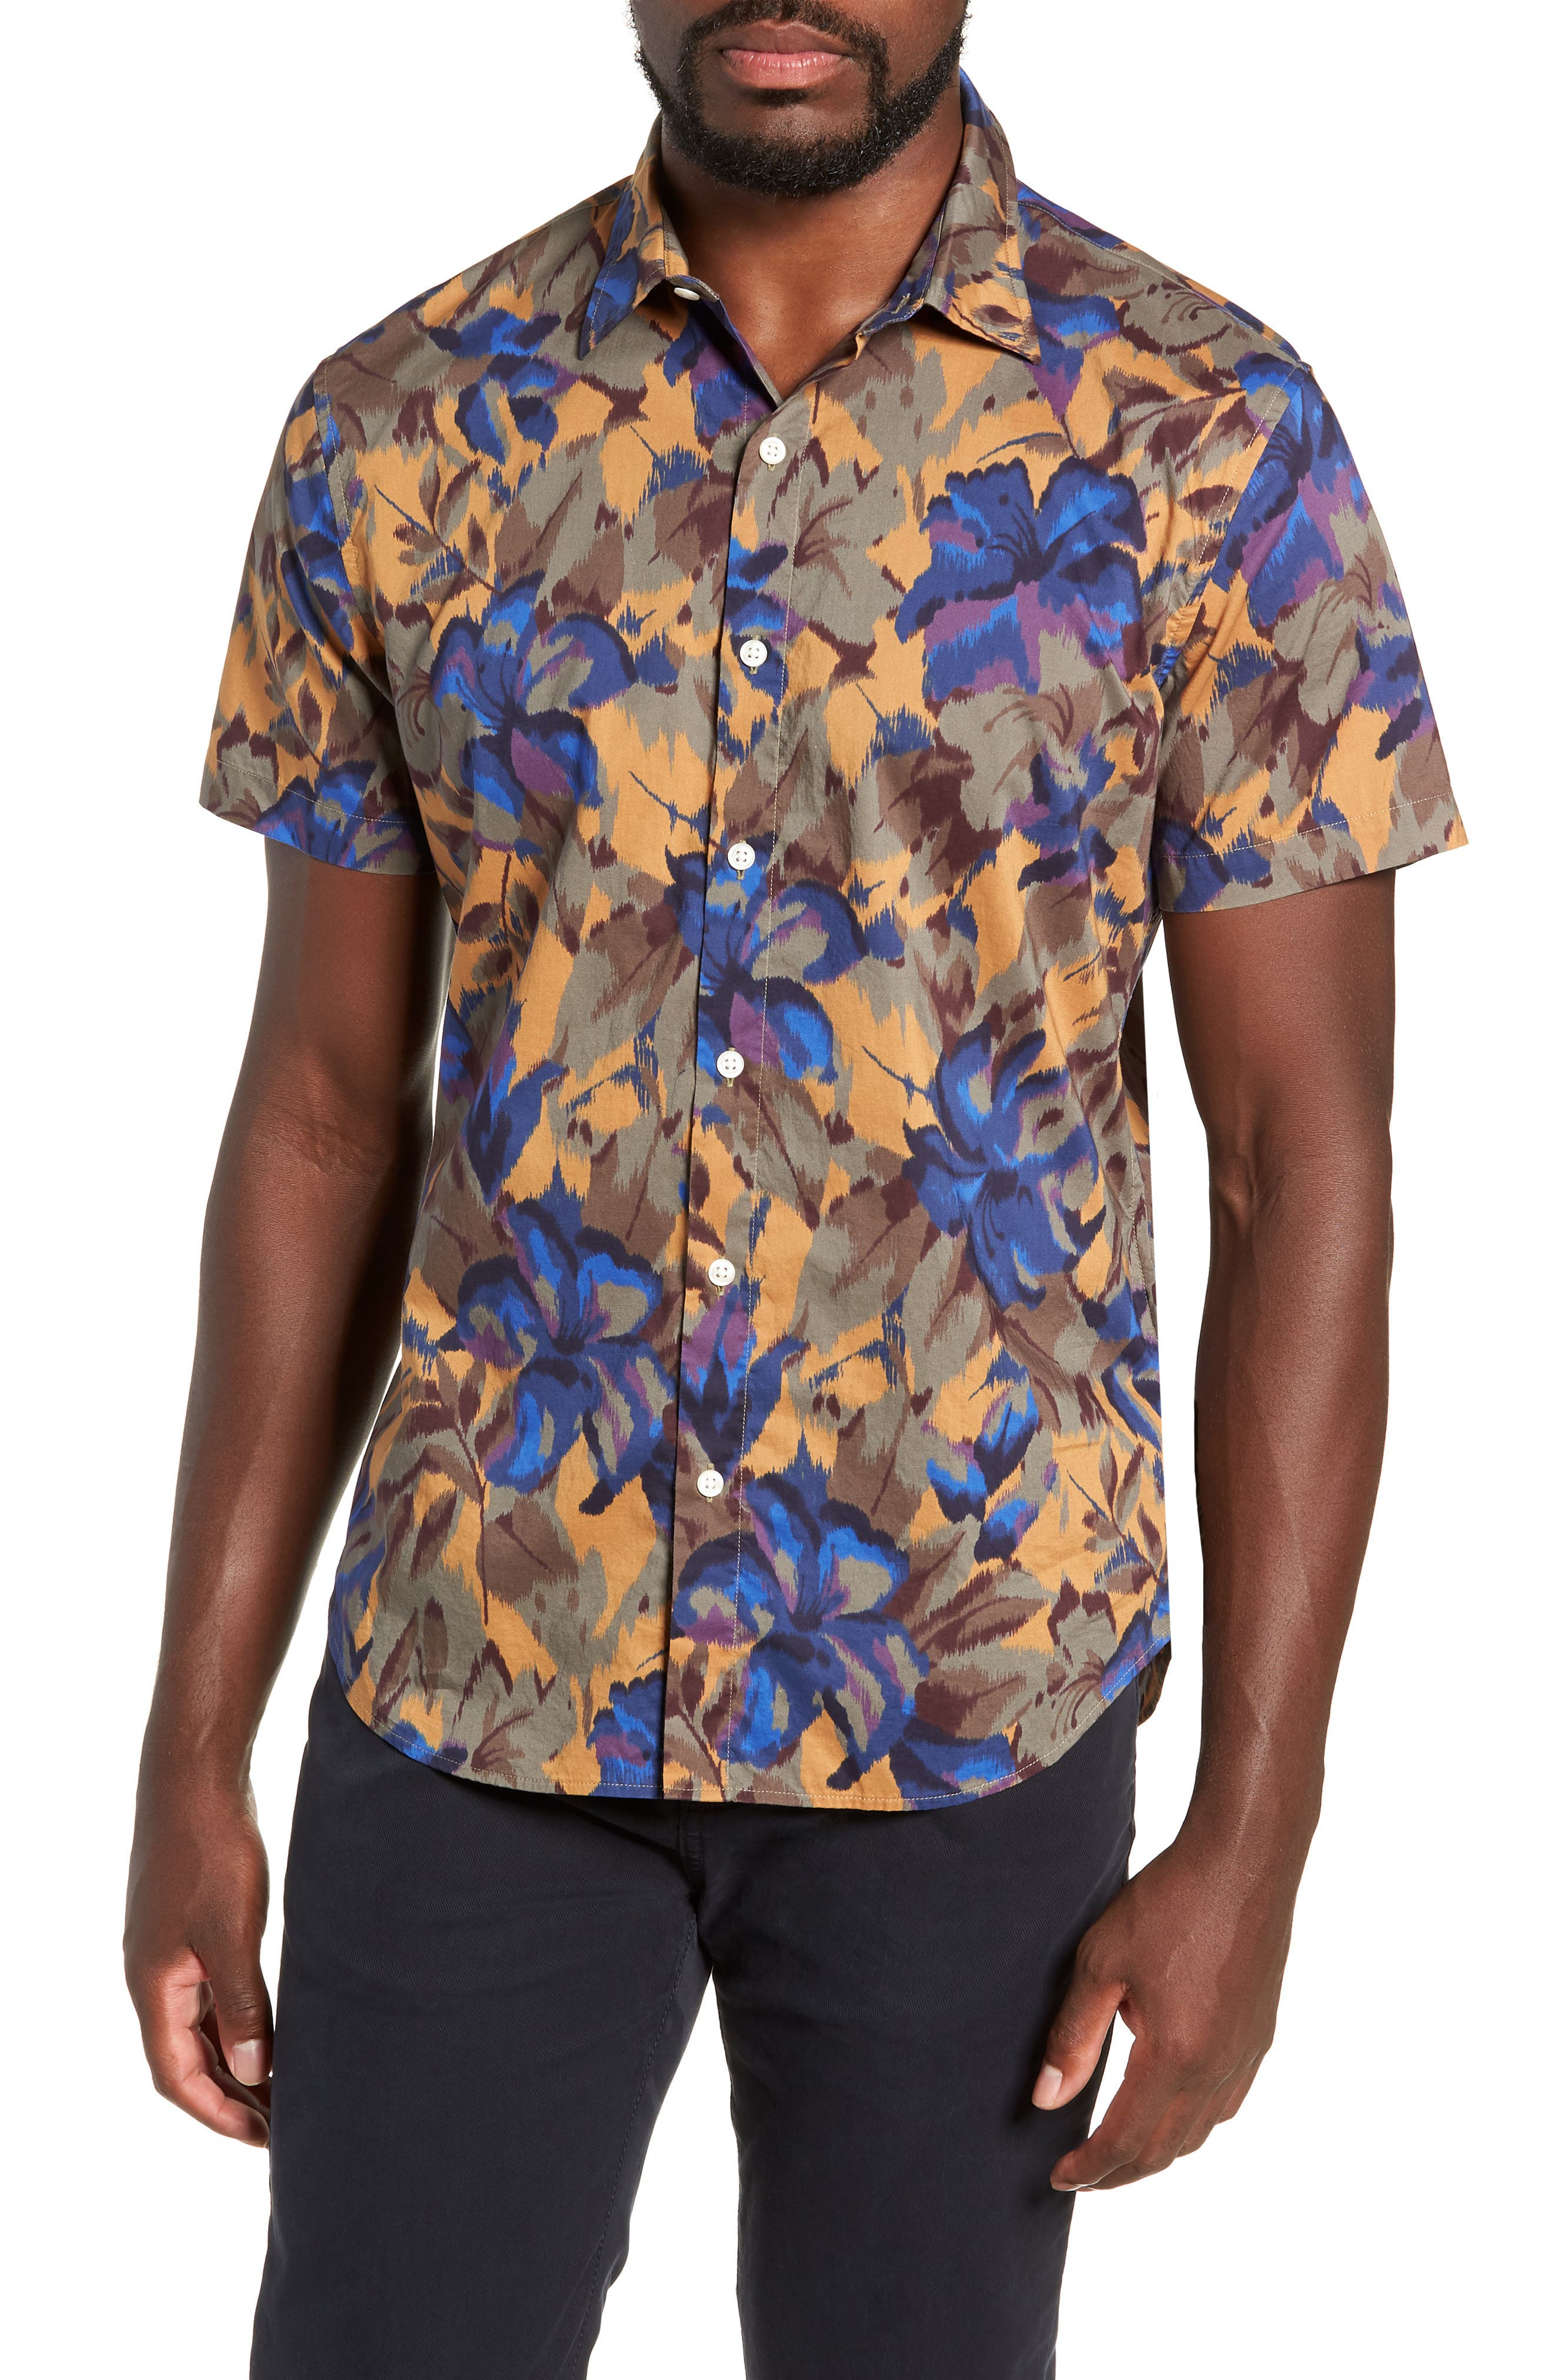 Riviera Slim Fit Sport Shirt,                             Main thumbnail 1, color,                             FADED FLORAL - AMBER TOPAZ